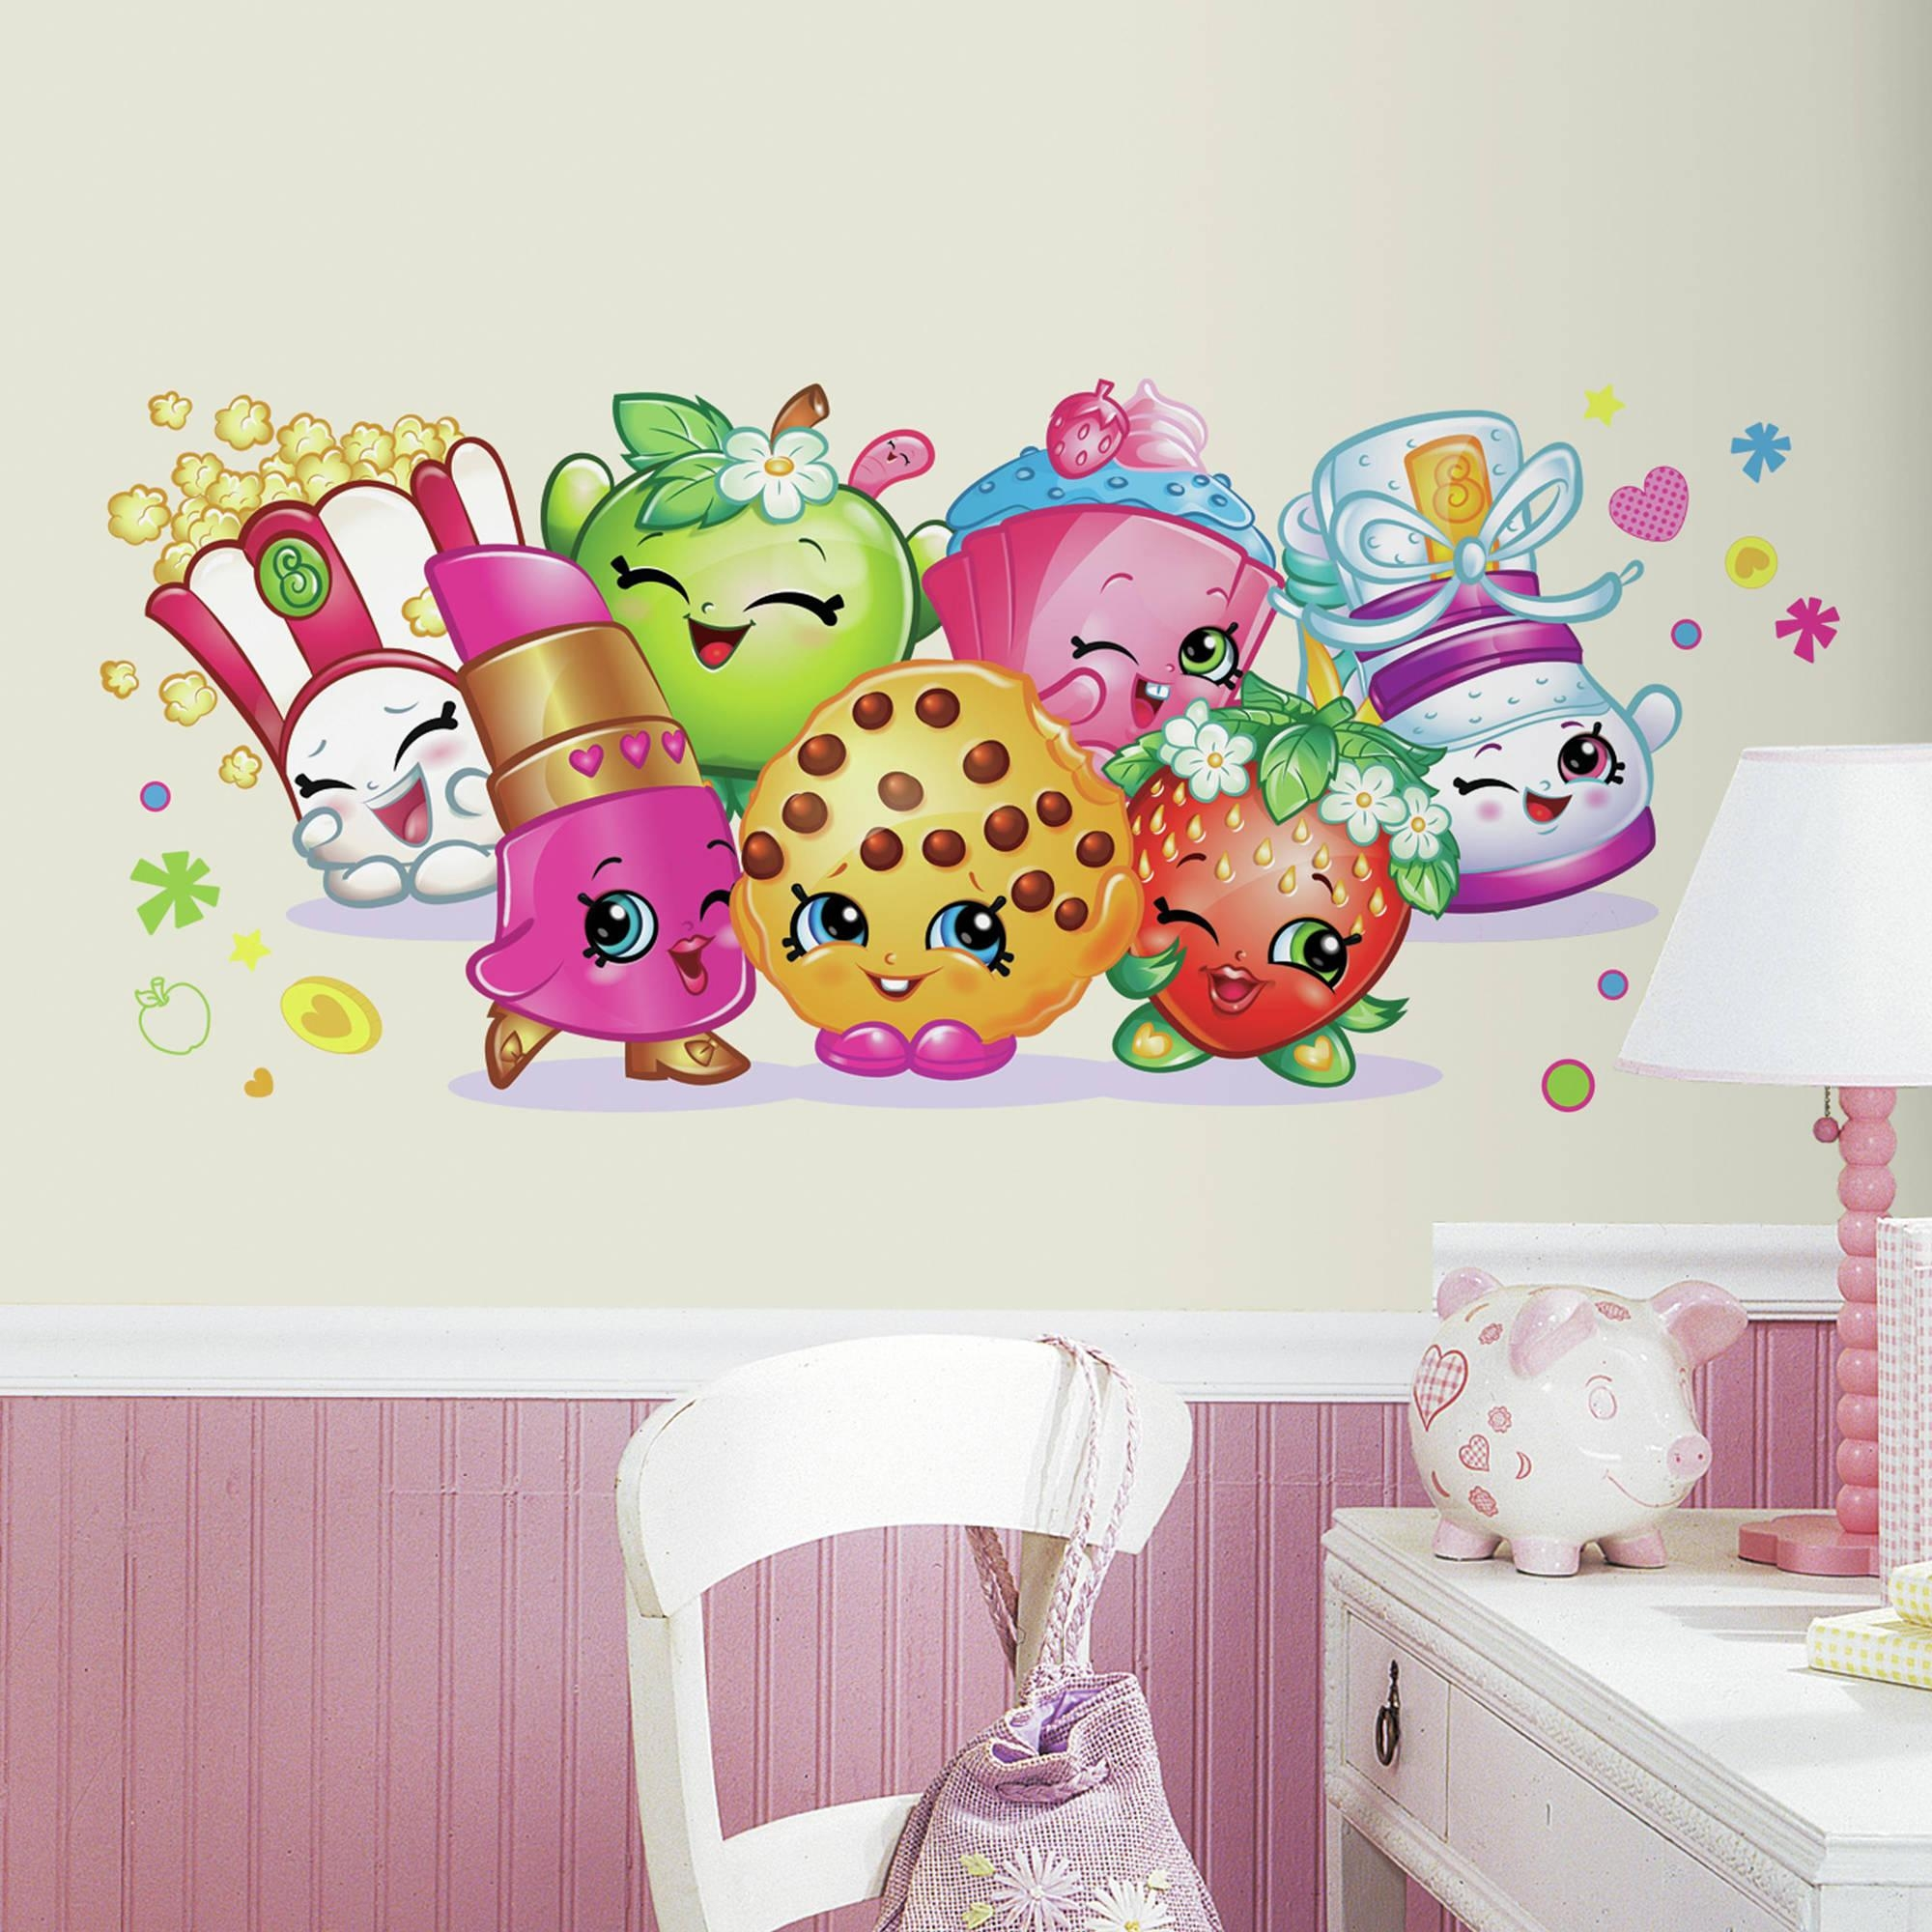 Roommates Shopkins Burst Peel And Stick Giant Wall Decals inside Walmart Wall Stickers